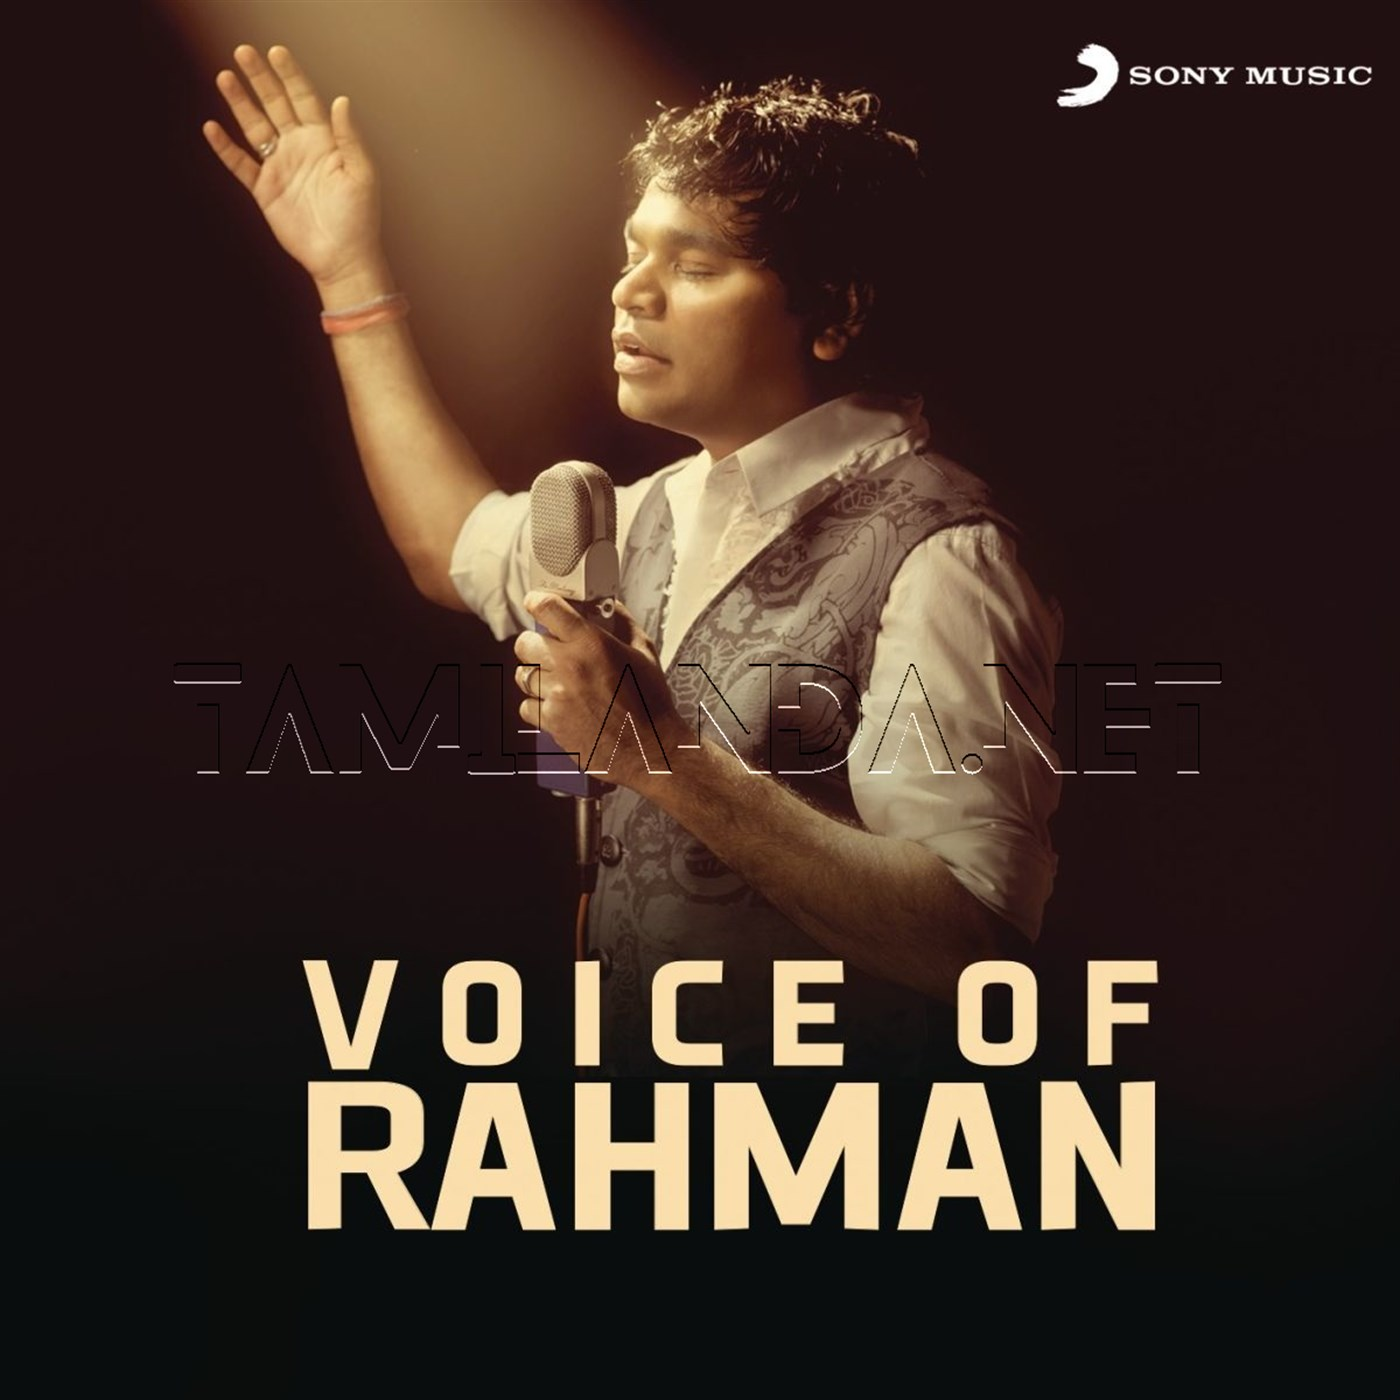 Voice of Rahman (2013)